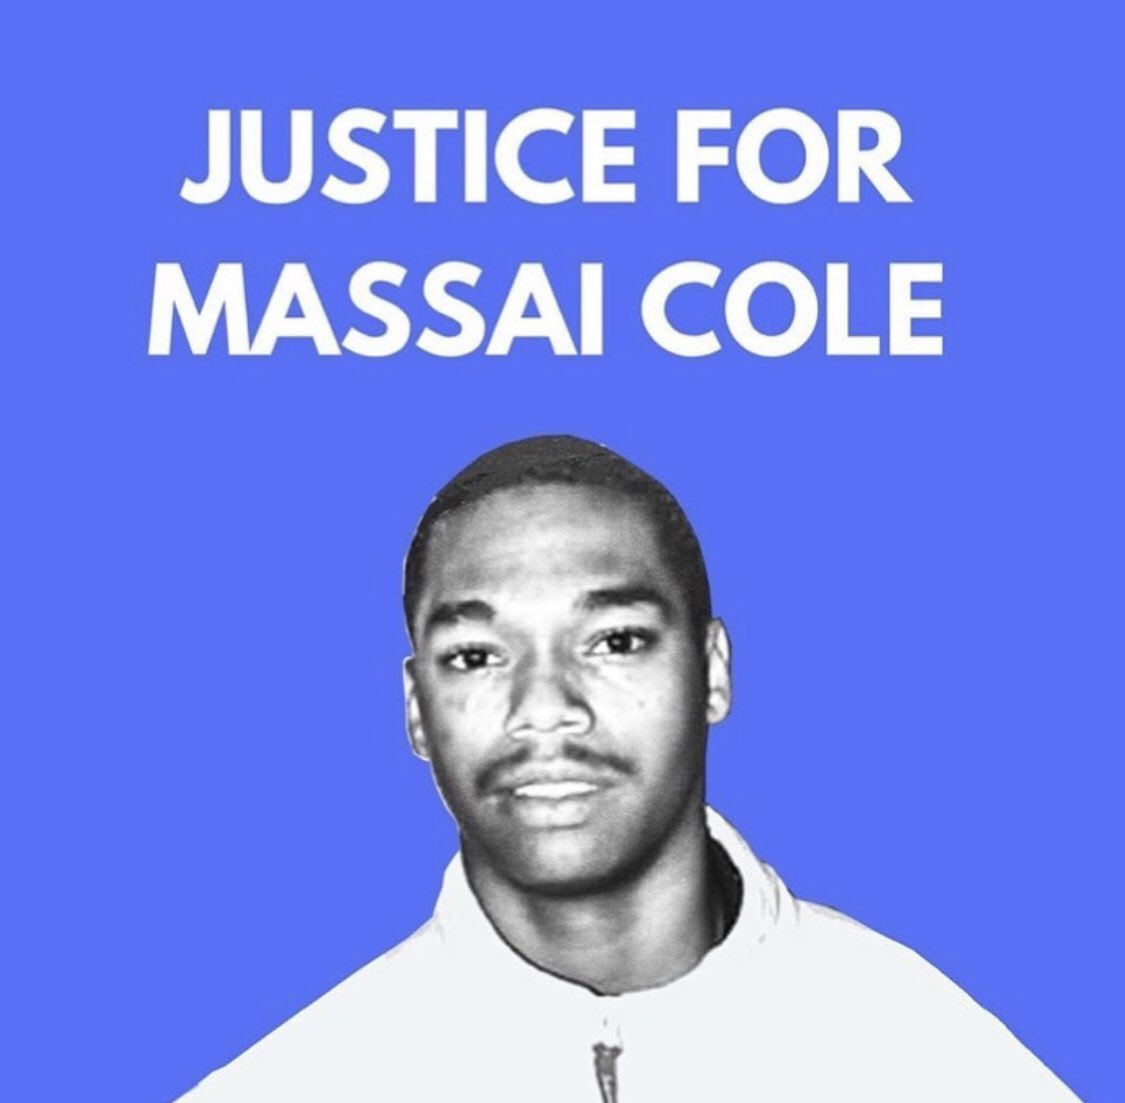 Grand jury indictment unsealed in the murder of Massai Cole- Hate crimes charges added